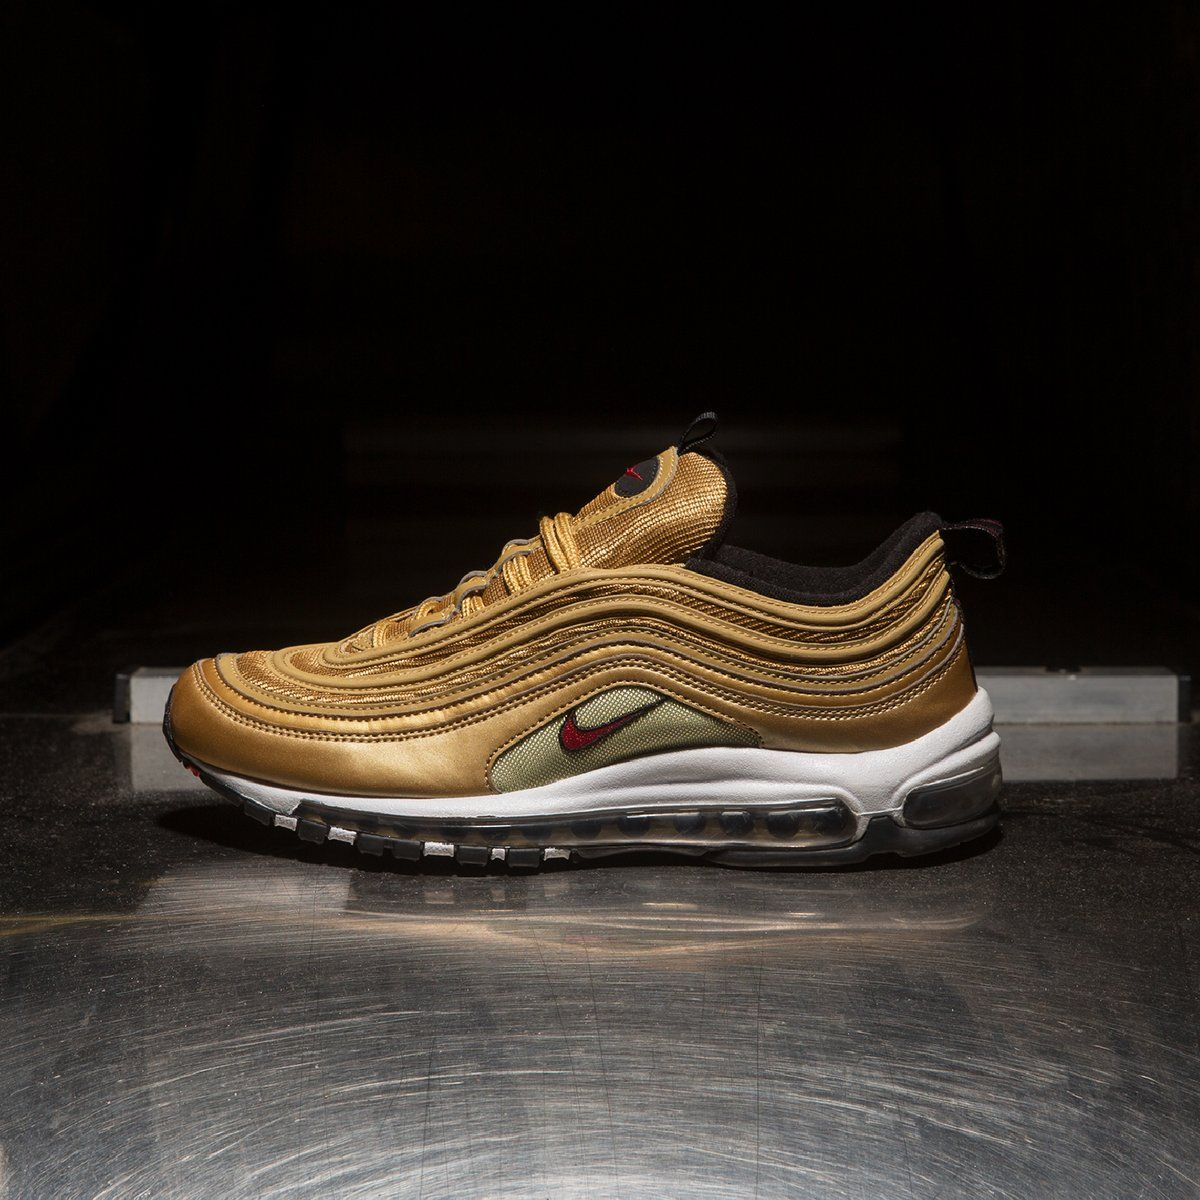 Nike Air Max 97 OG Gold Official Release Date And Images Revealed ... cf9830b944